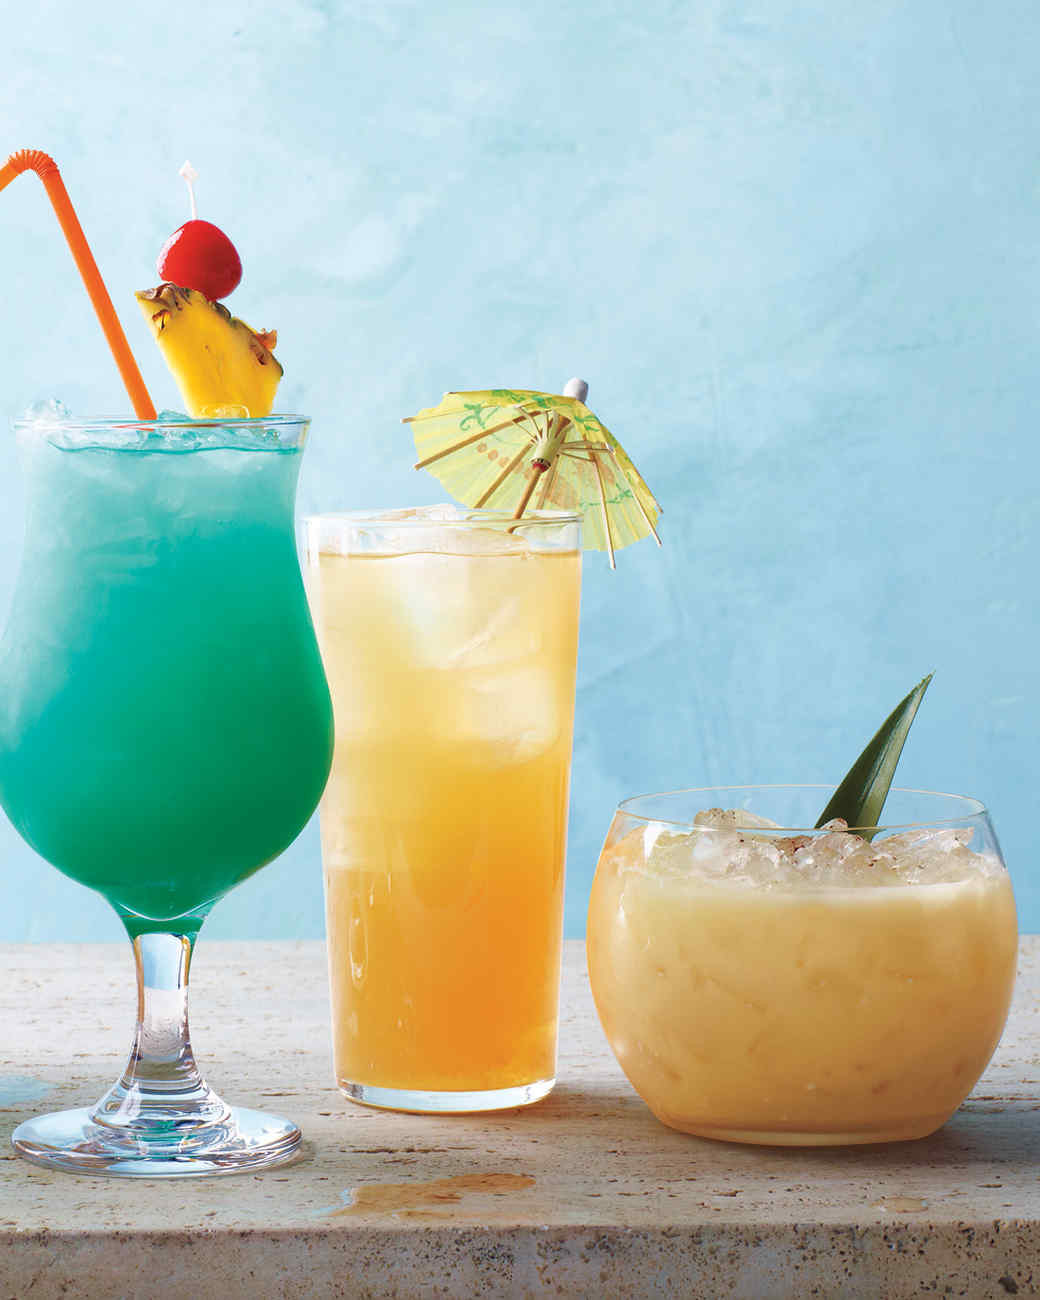 Coconut Rum Drinks  Amazing Rum Cocktails That Pack a Serious Punch